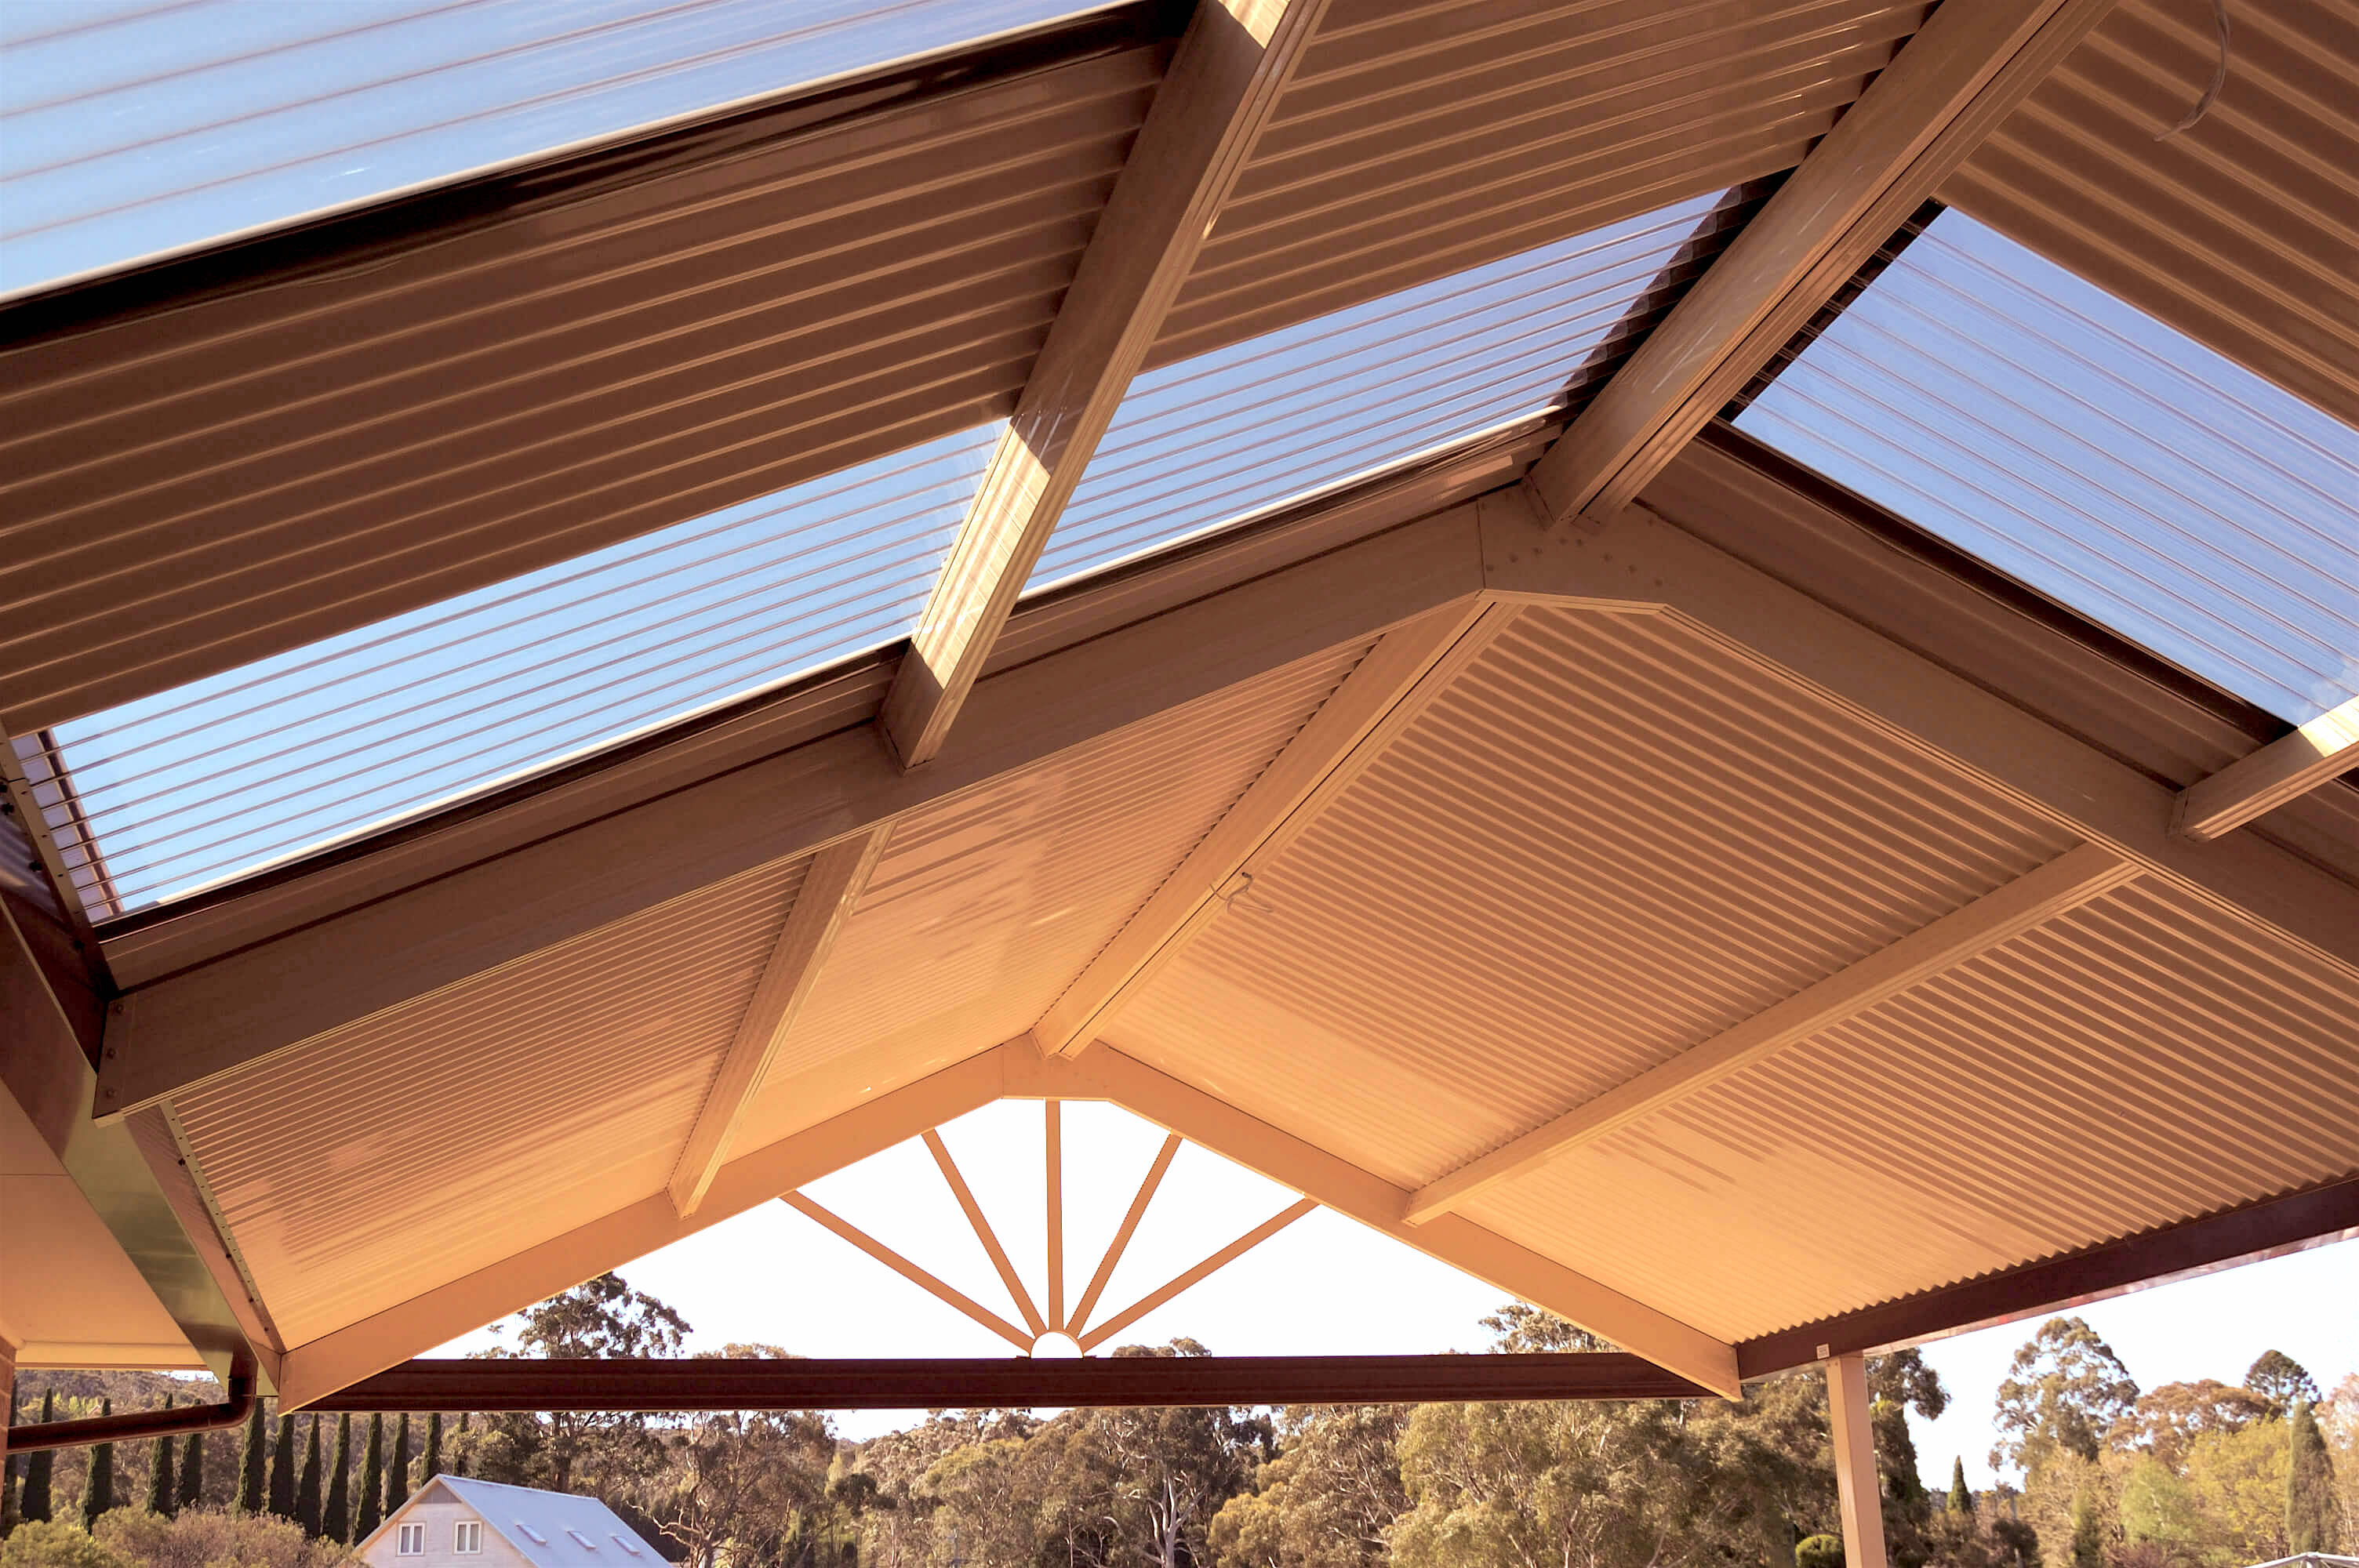 Colorbeam Light Structural Steel Roof Beams For Home